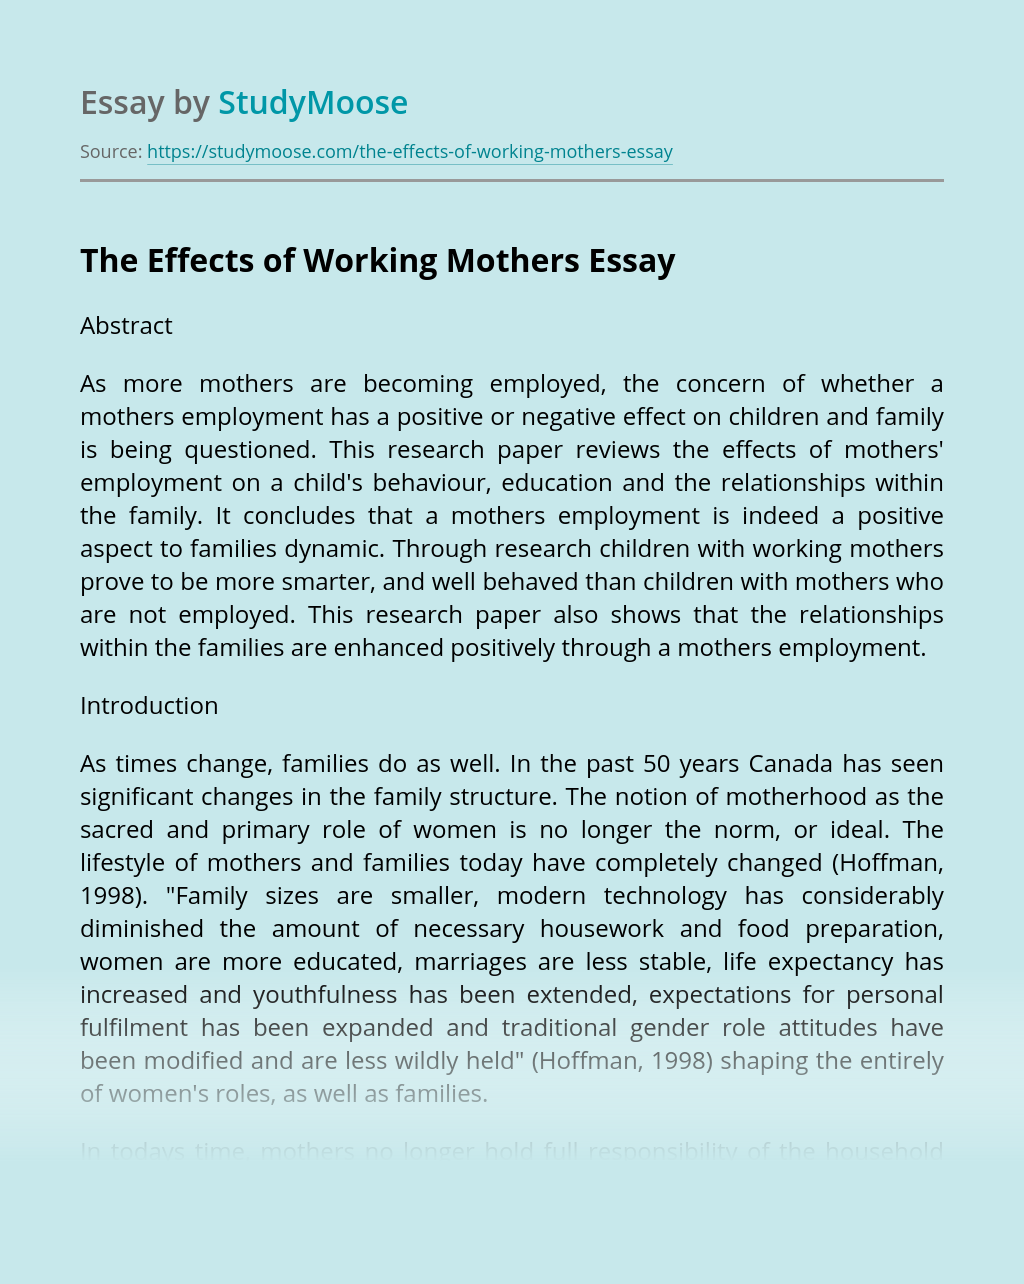 The Effects of Working Mothers